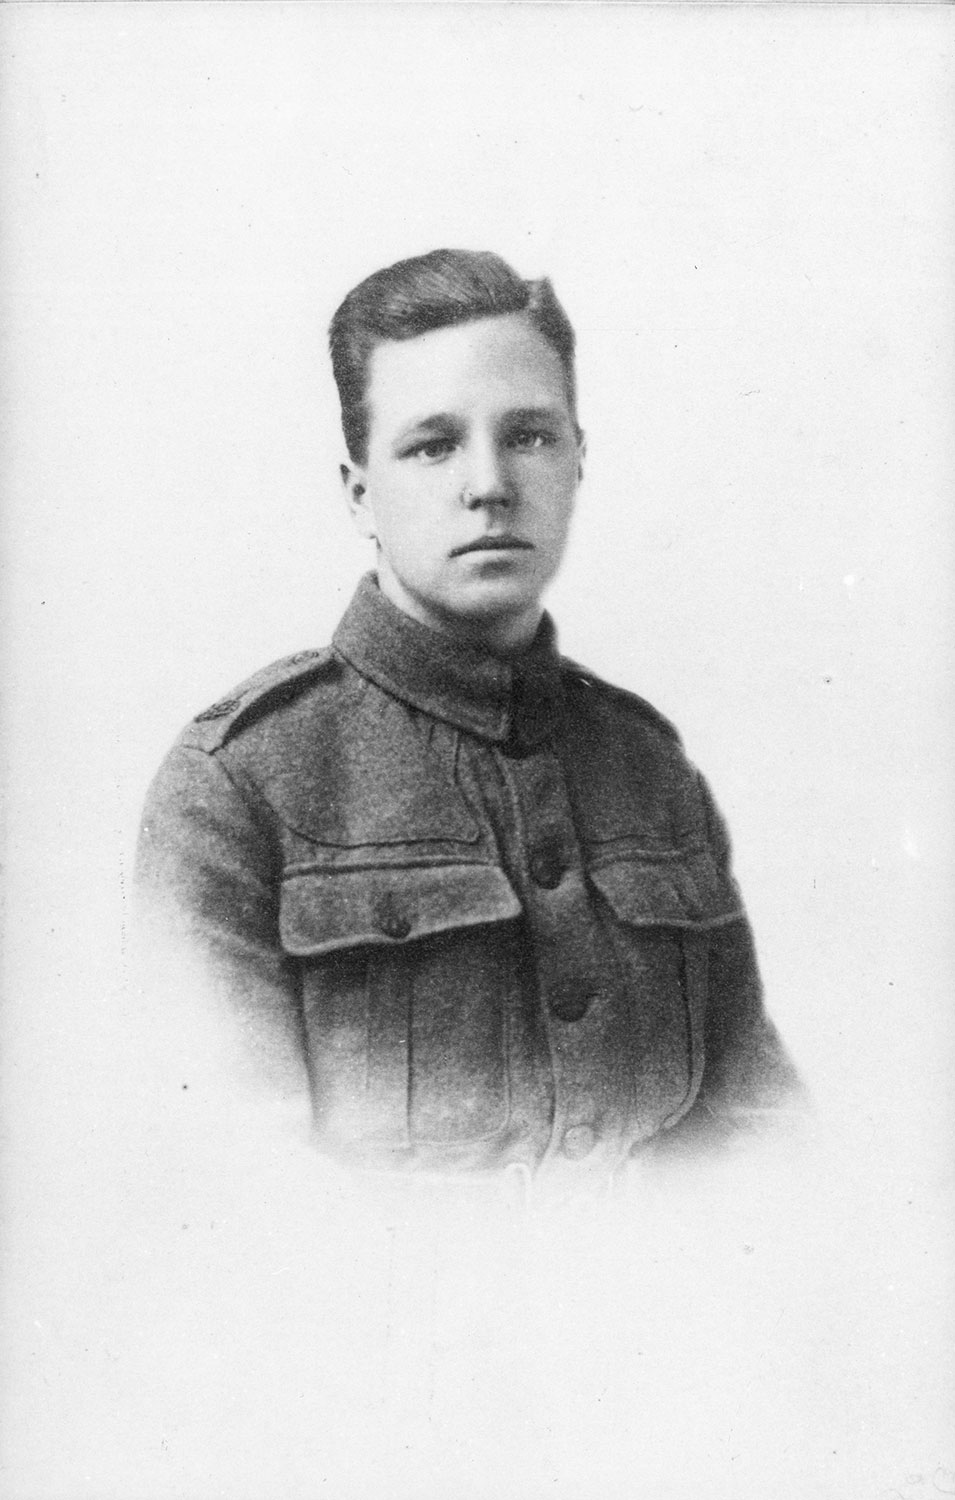 1917 Henry Moore aged 19, Private in the 15th London Regiment of the Civil Service Rifles